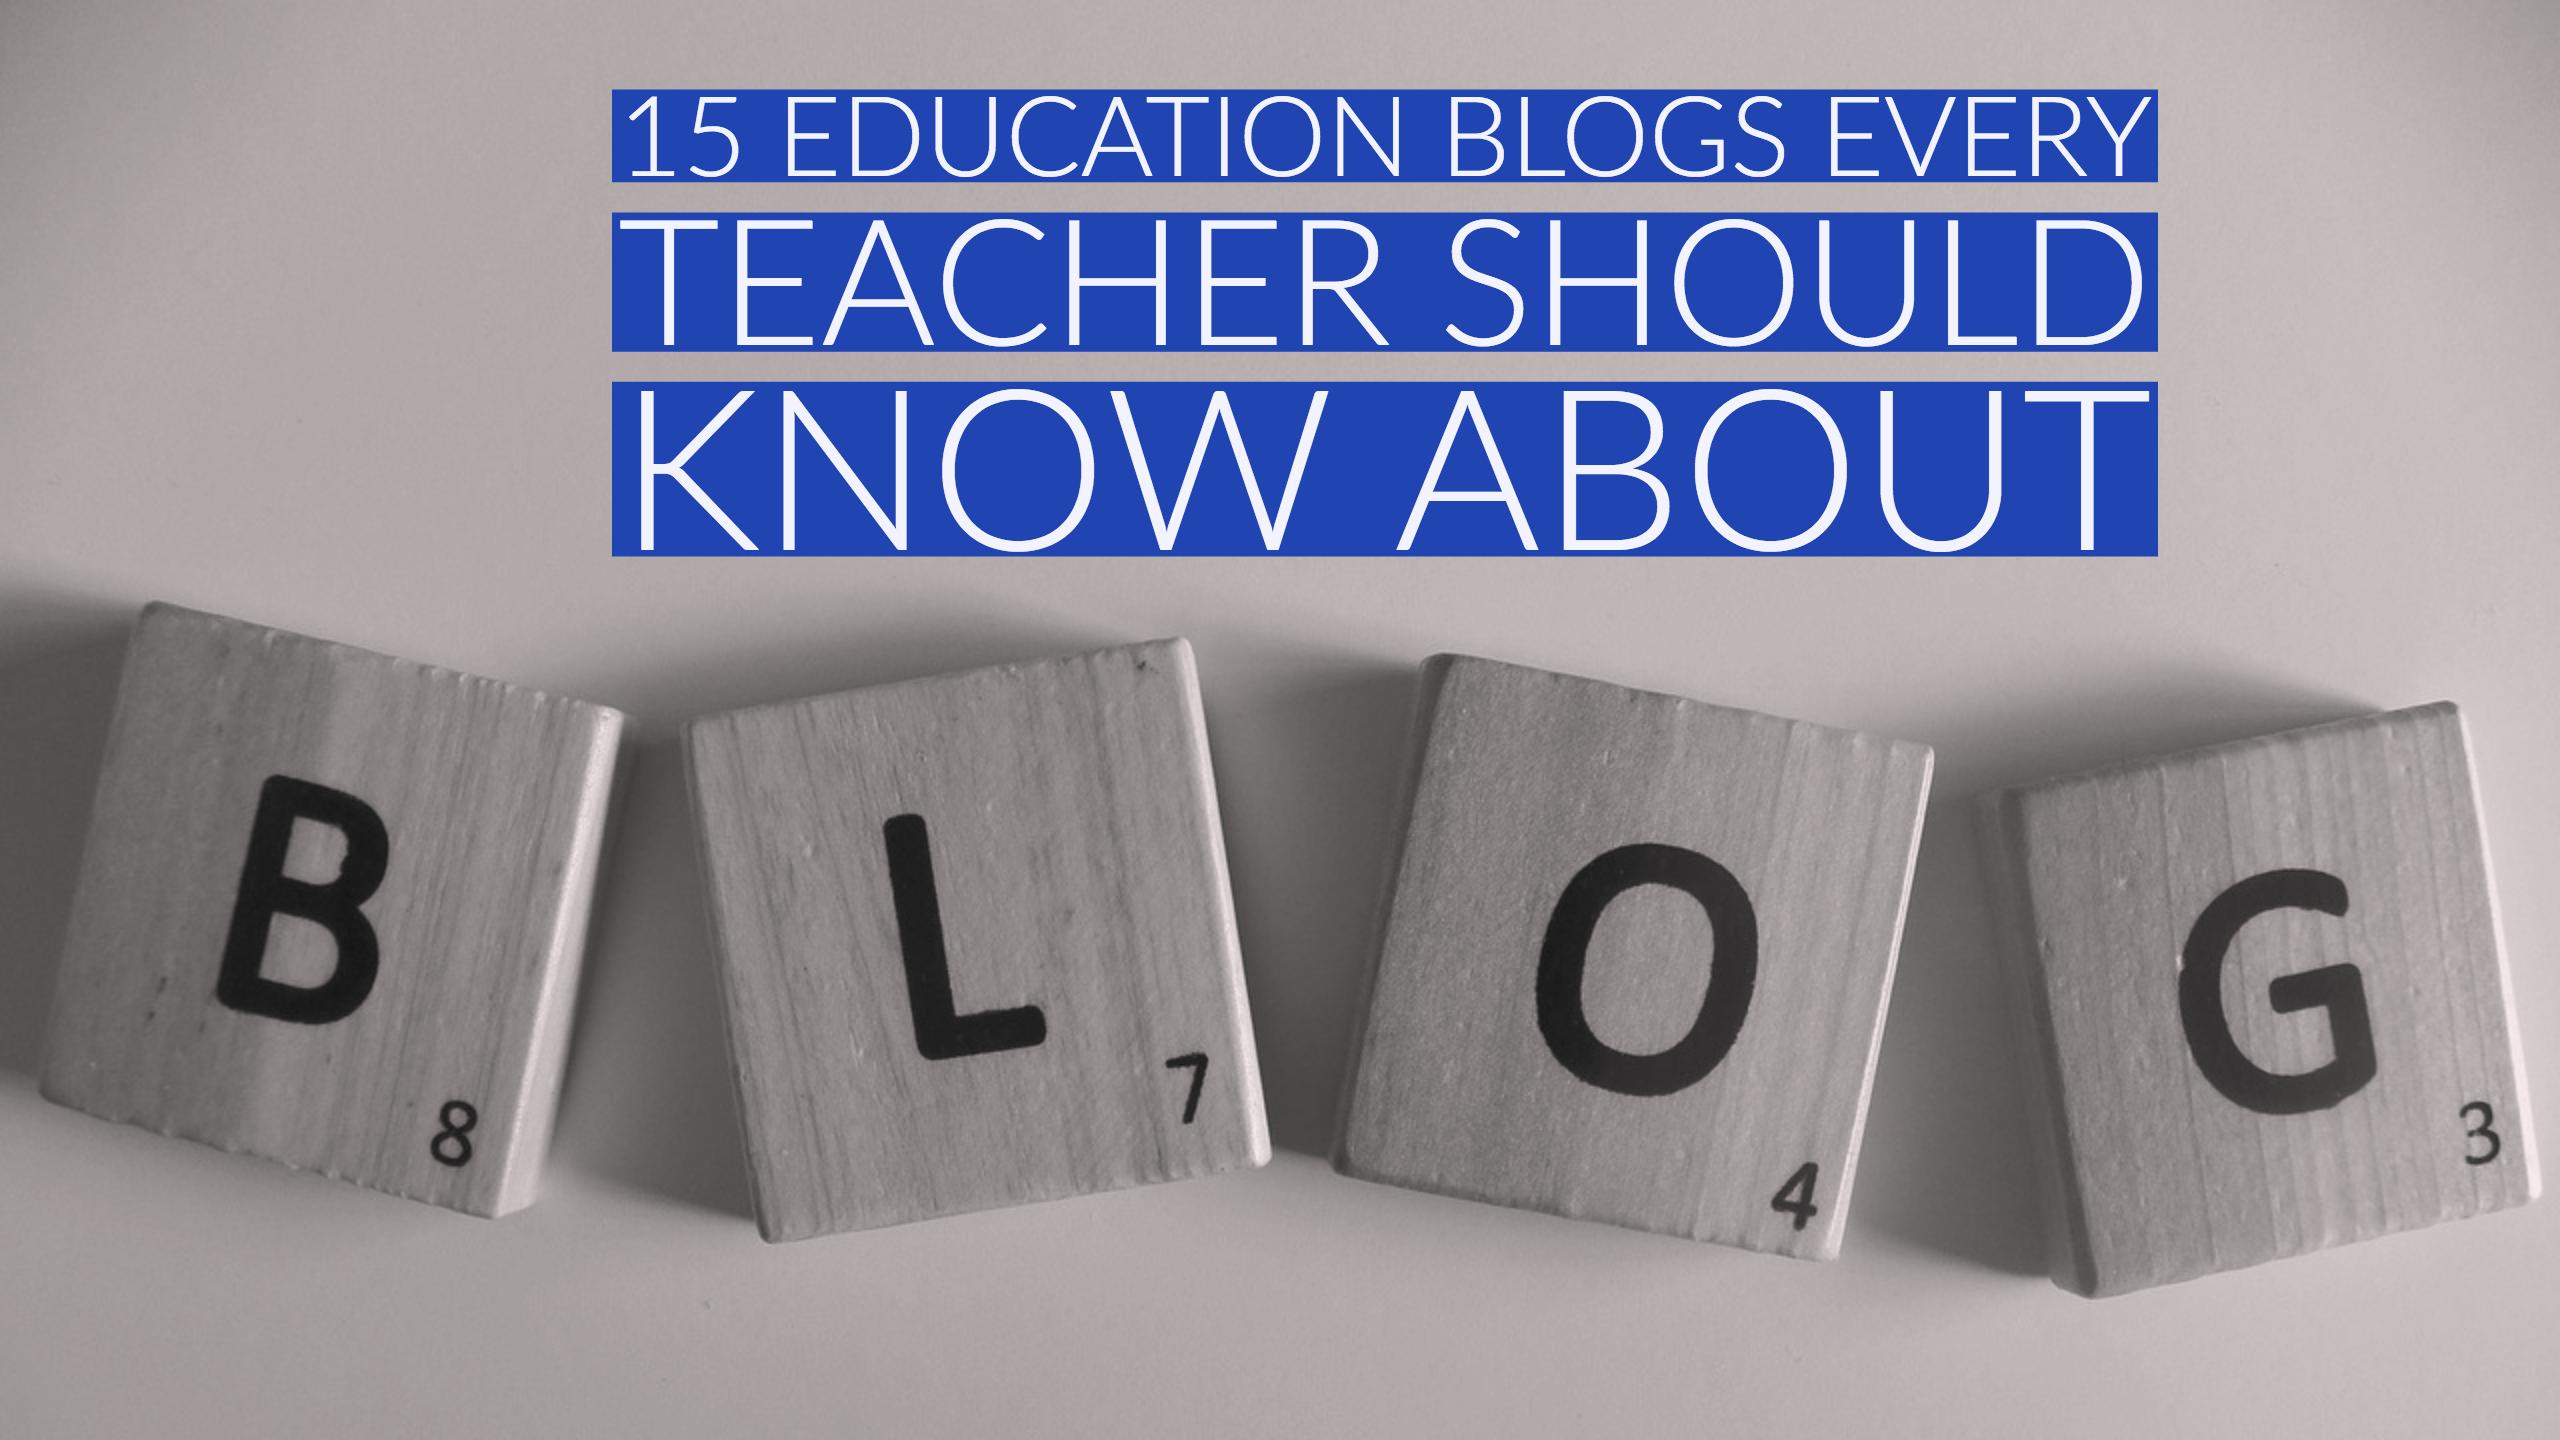 15 education blogs every teacher should know about